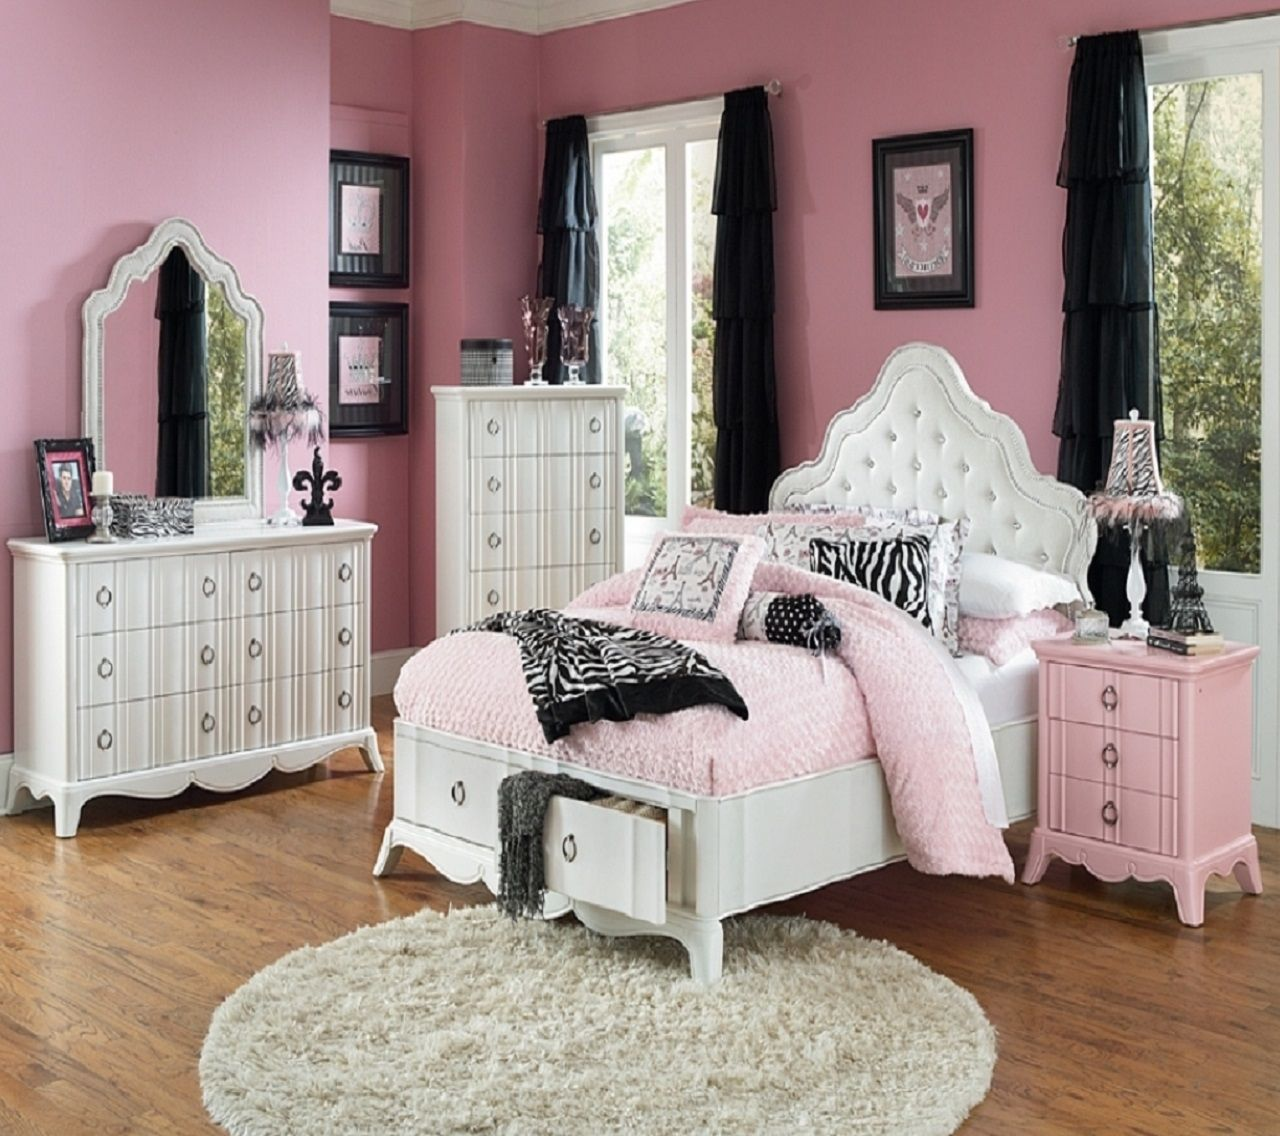 Pin On Adult Bedrooms